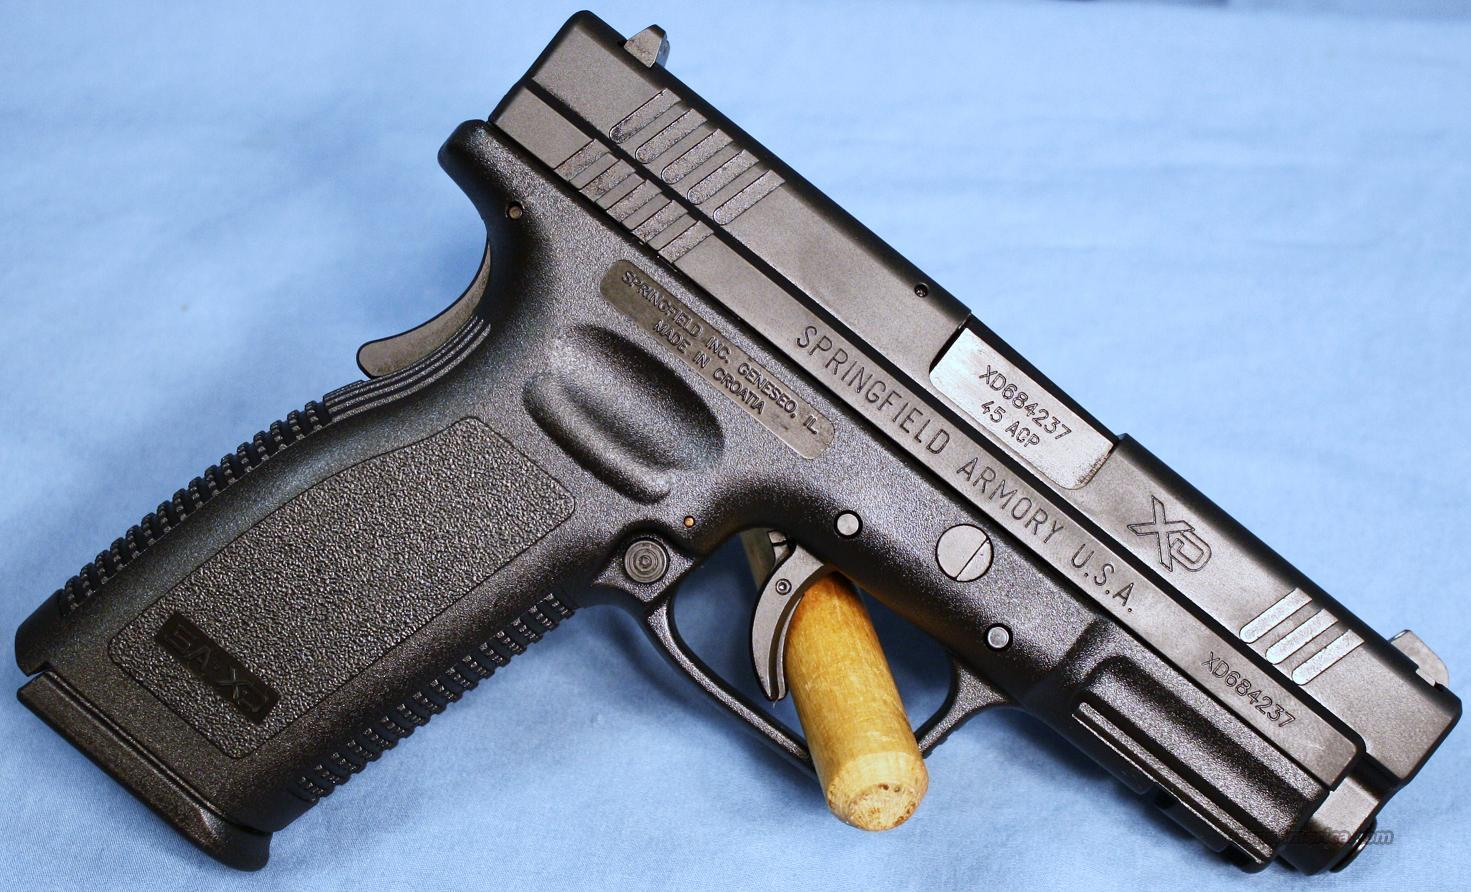 Springfield Armory XD45 Service Model Semi-Automatic Pistol .45ACP With Gear  Guns > Pistols > Springfield Armory Pistols > XD (eXtreme Duty)